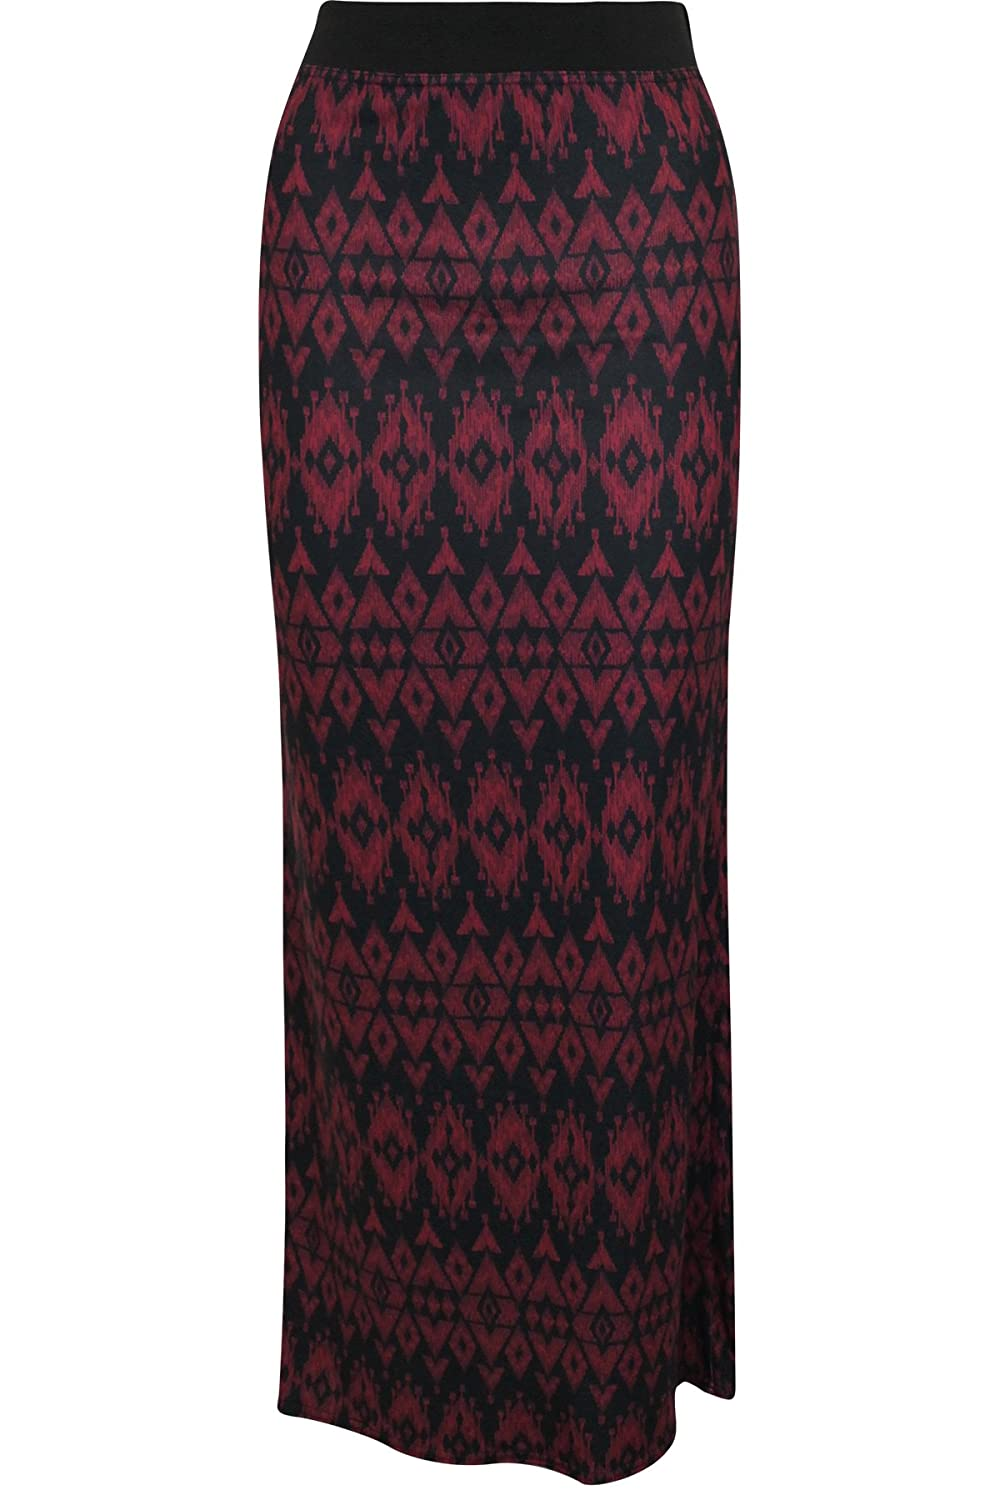 Oromiss Womens Ladies Aztec Pattern Slim Fit Maxi Monochrome Stretch Skirt:  Amazon.co.uk: Clothing